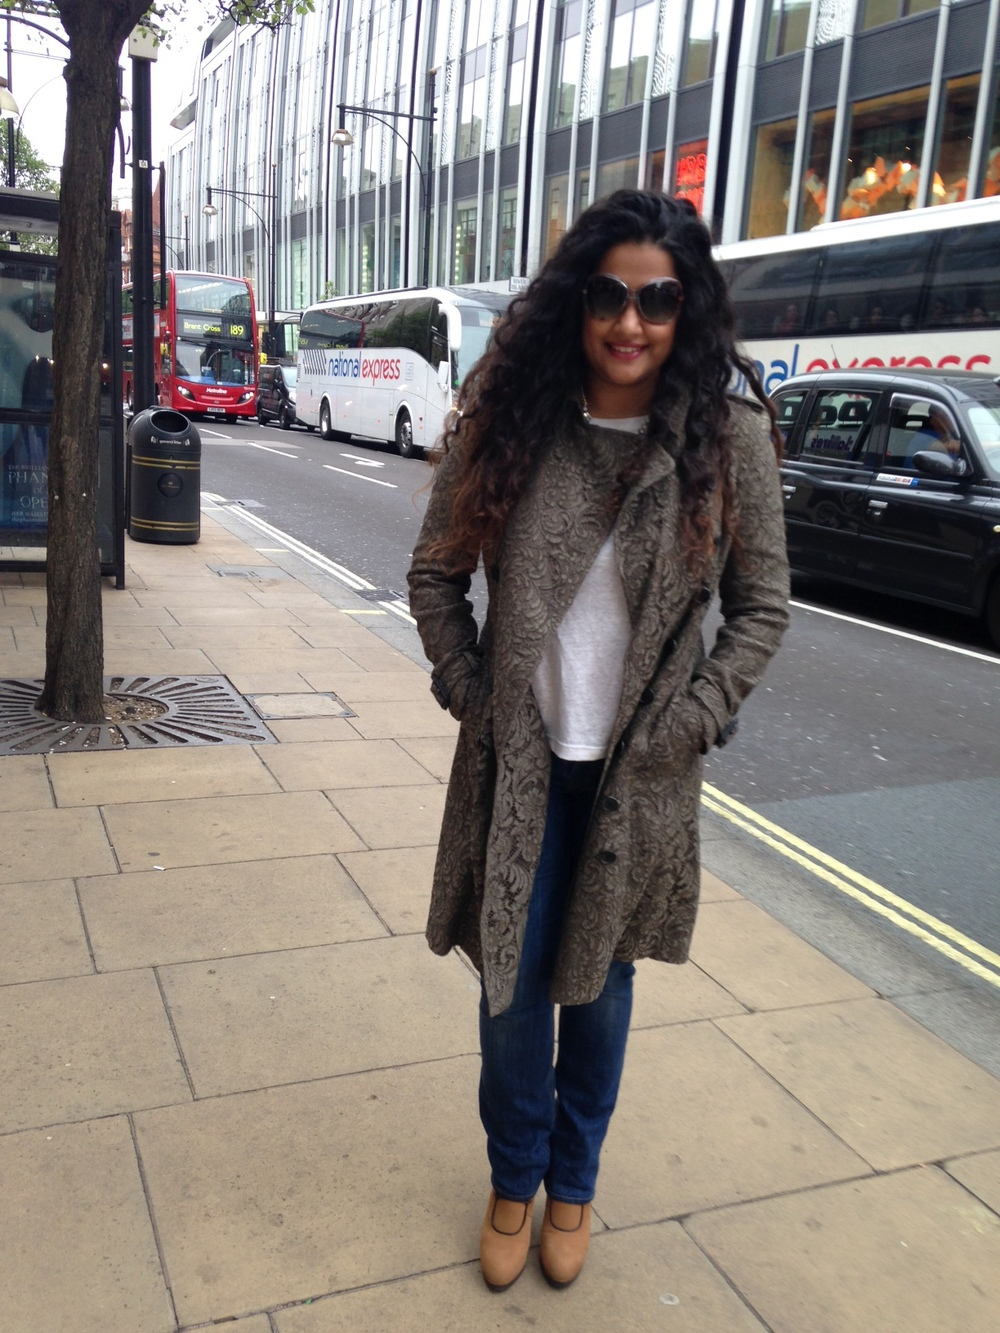 london-styling-sanjana-tpw-01135.JPG